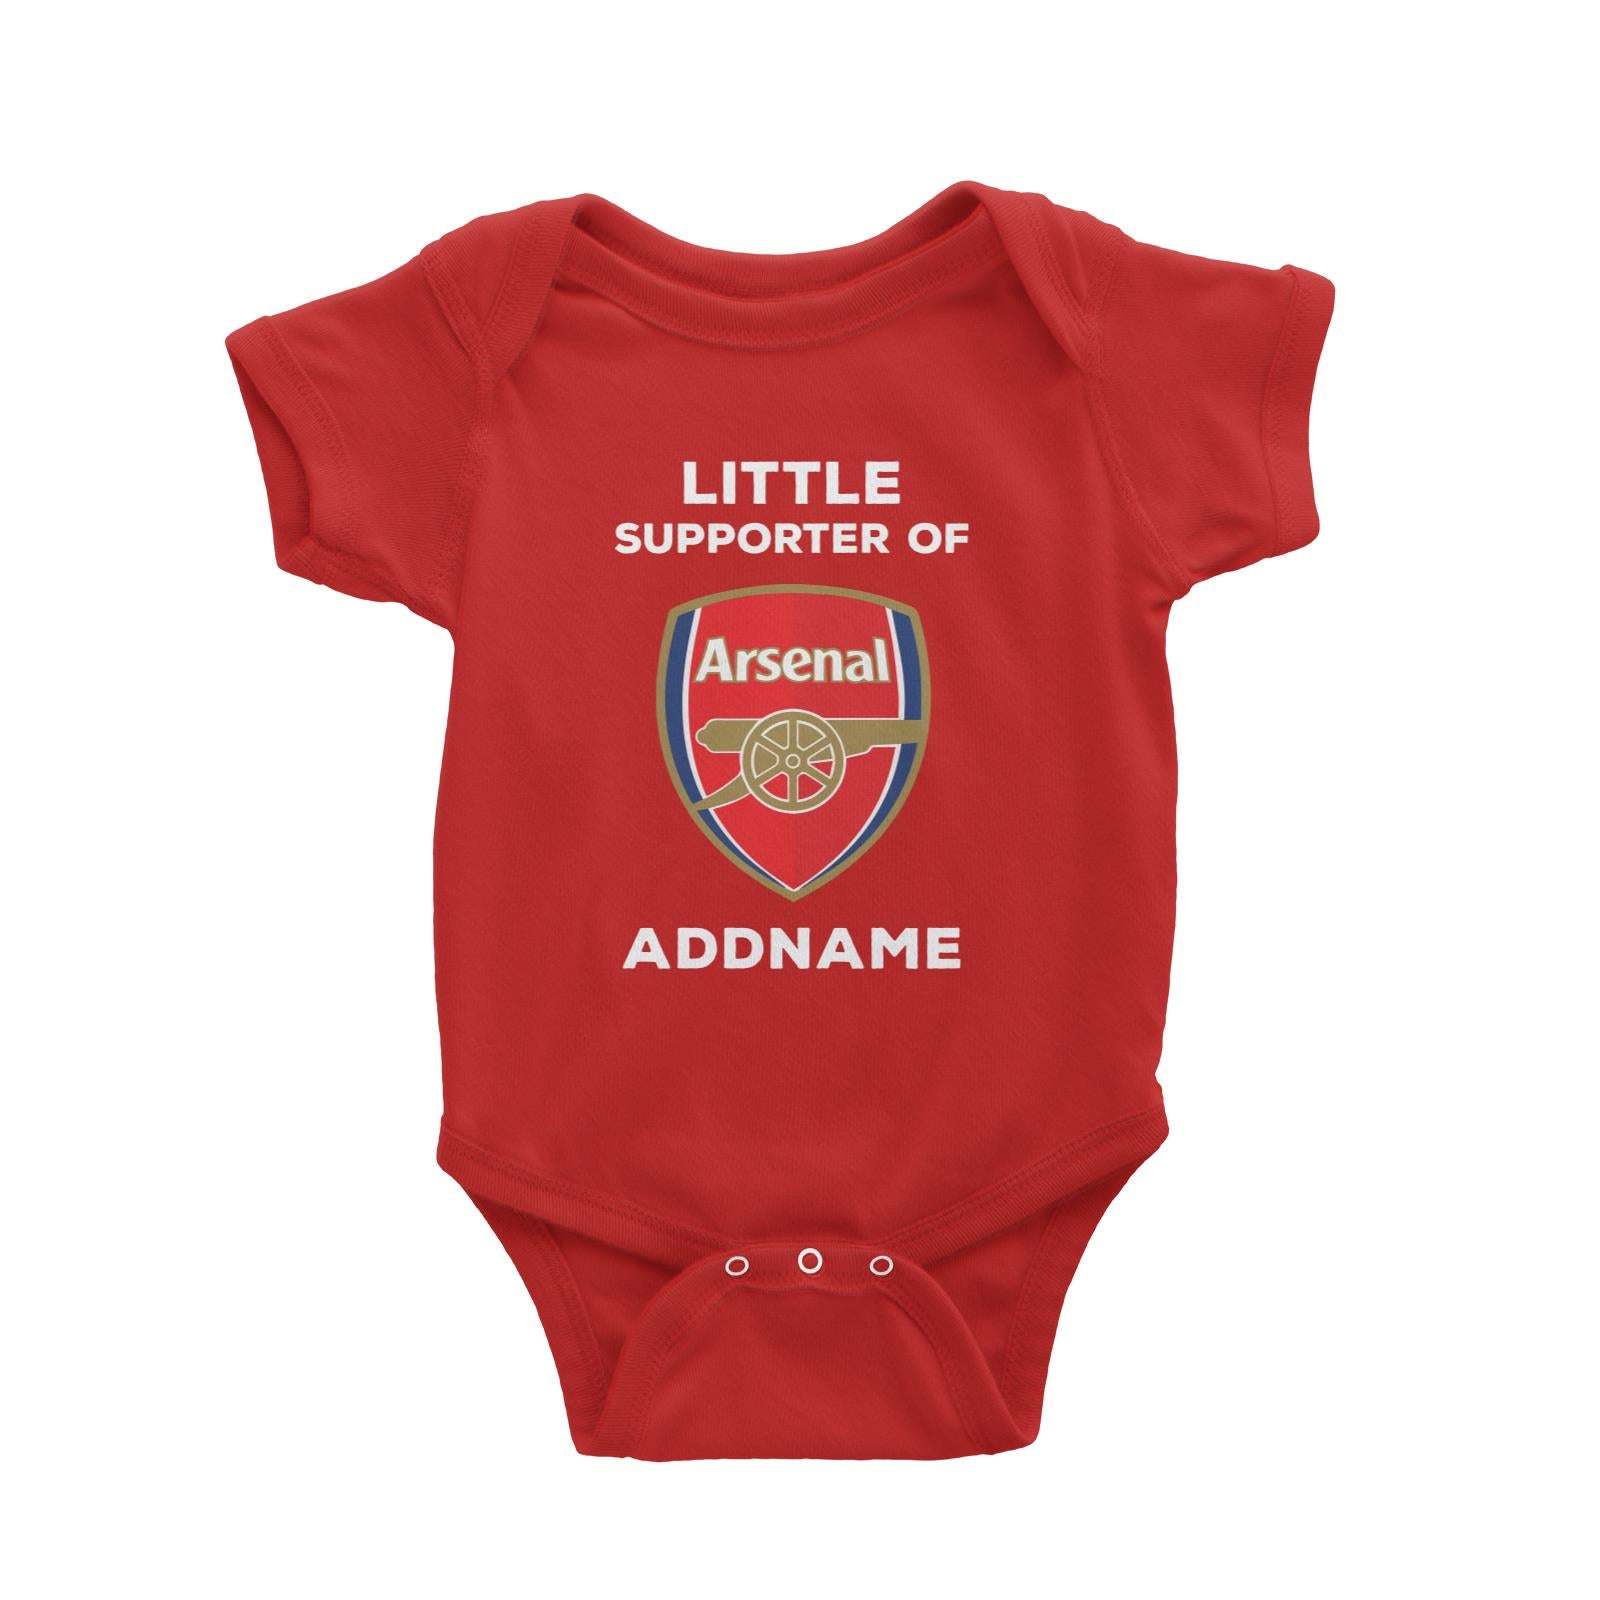 Arsenal FC Little Supporter Personalizable with Name Baby Romper